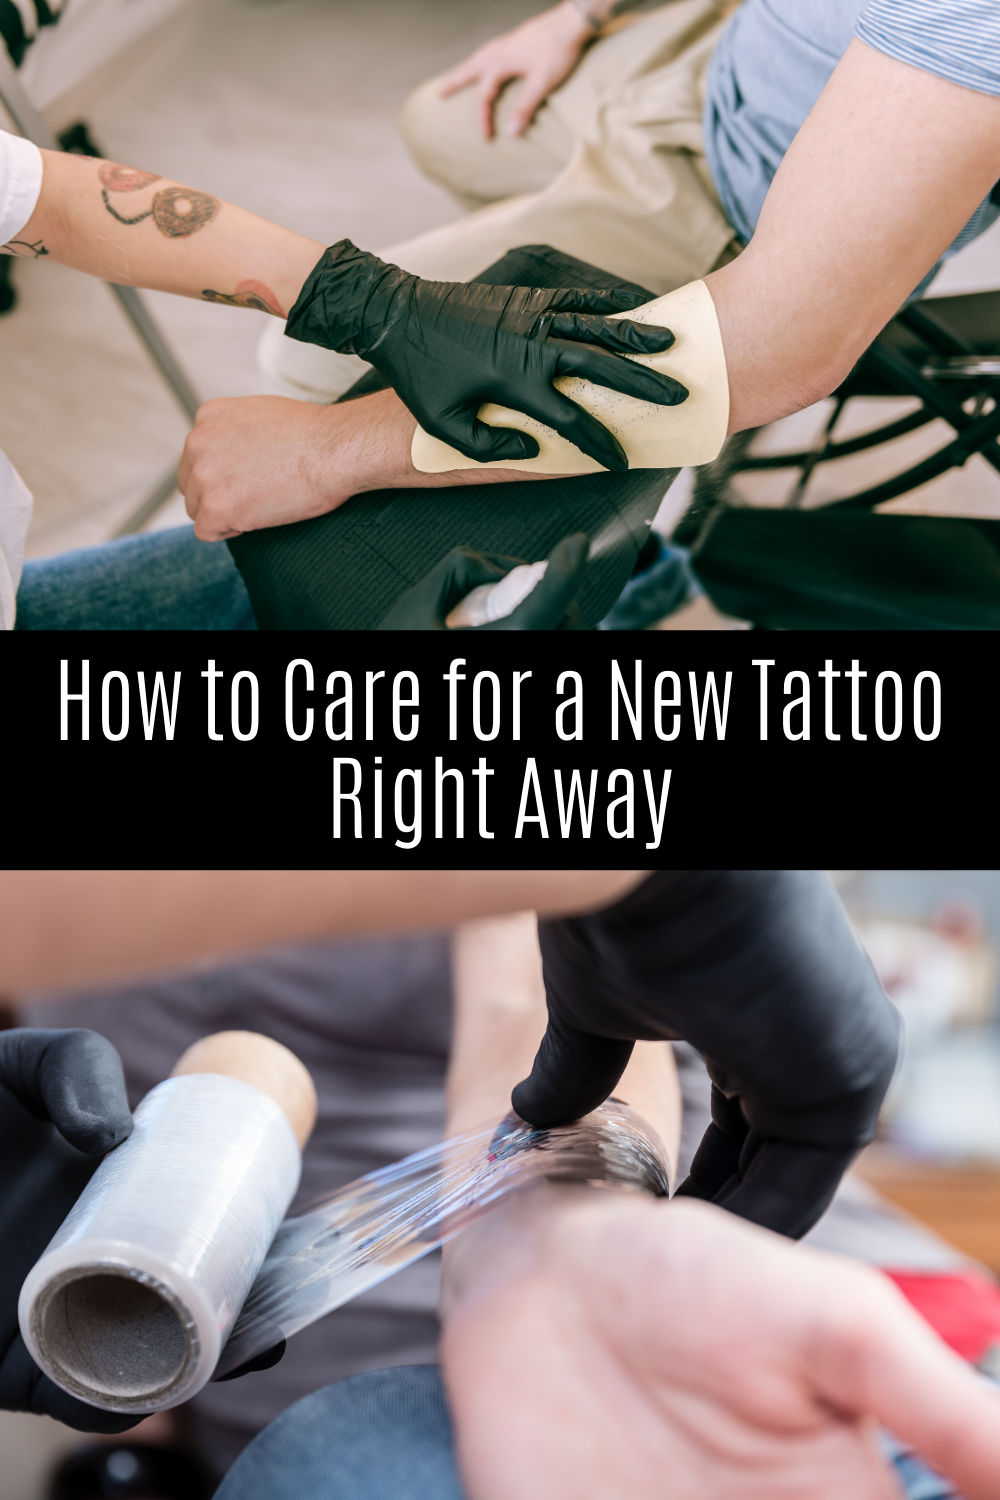 New Tattoo Care First 48 Hours - What Do To Right Away.